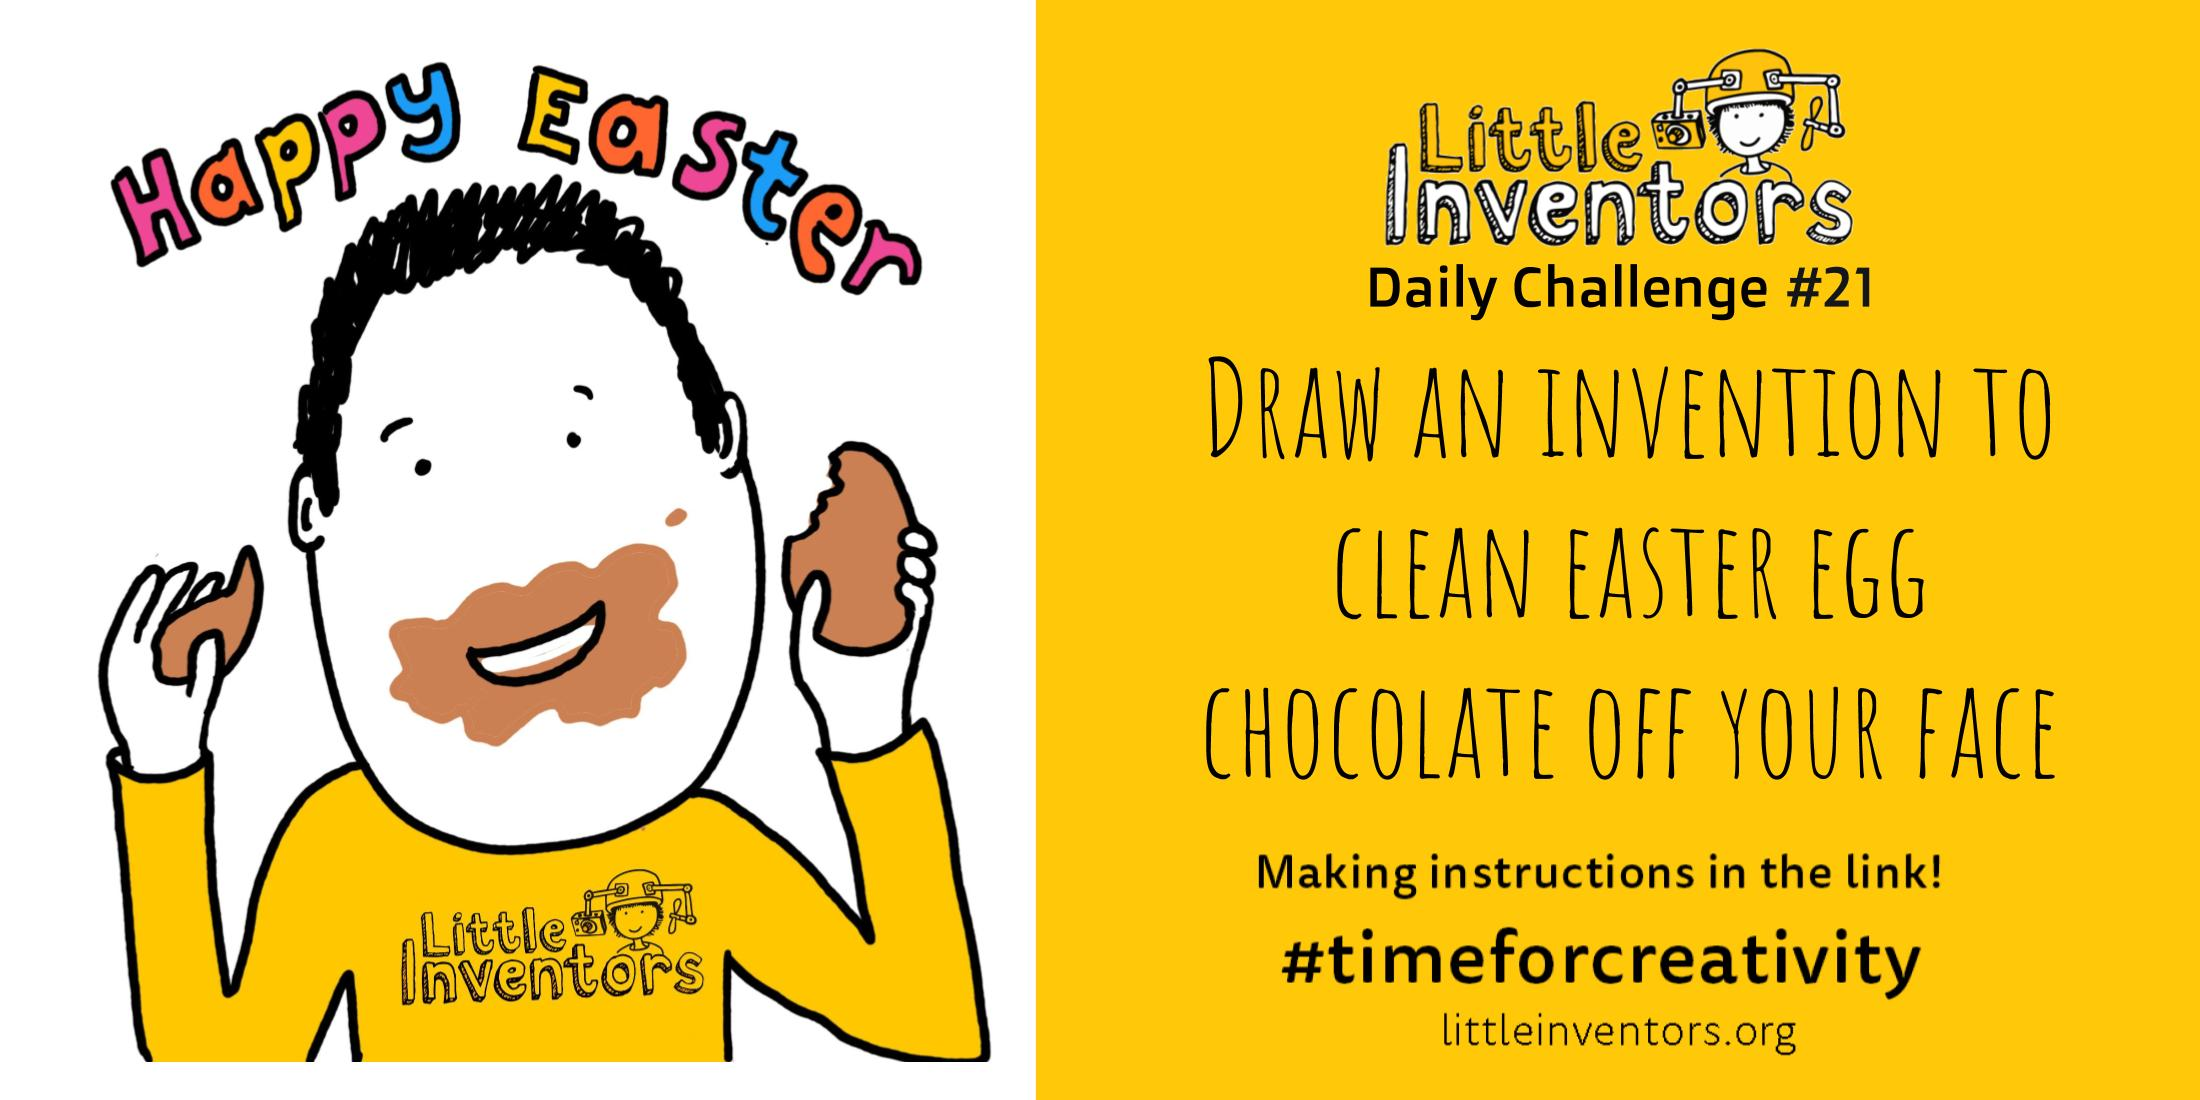 Little Inventors Challenge 21: Draw an invention to clean easter egg chocolate off your face